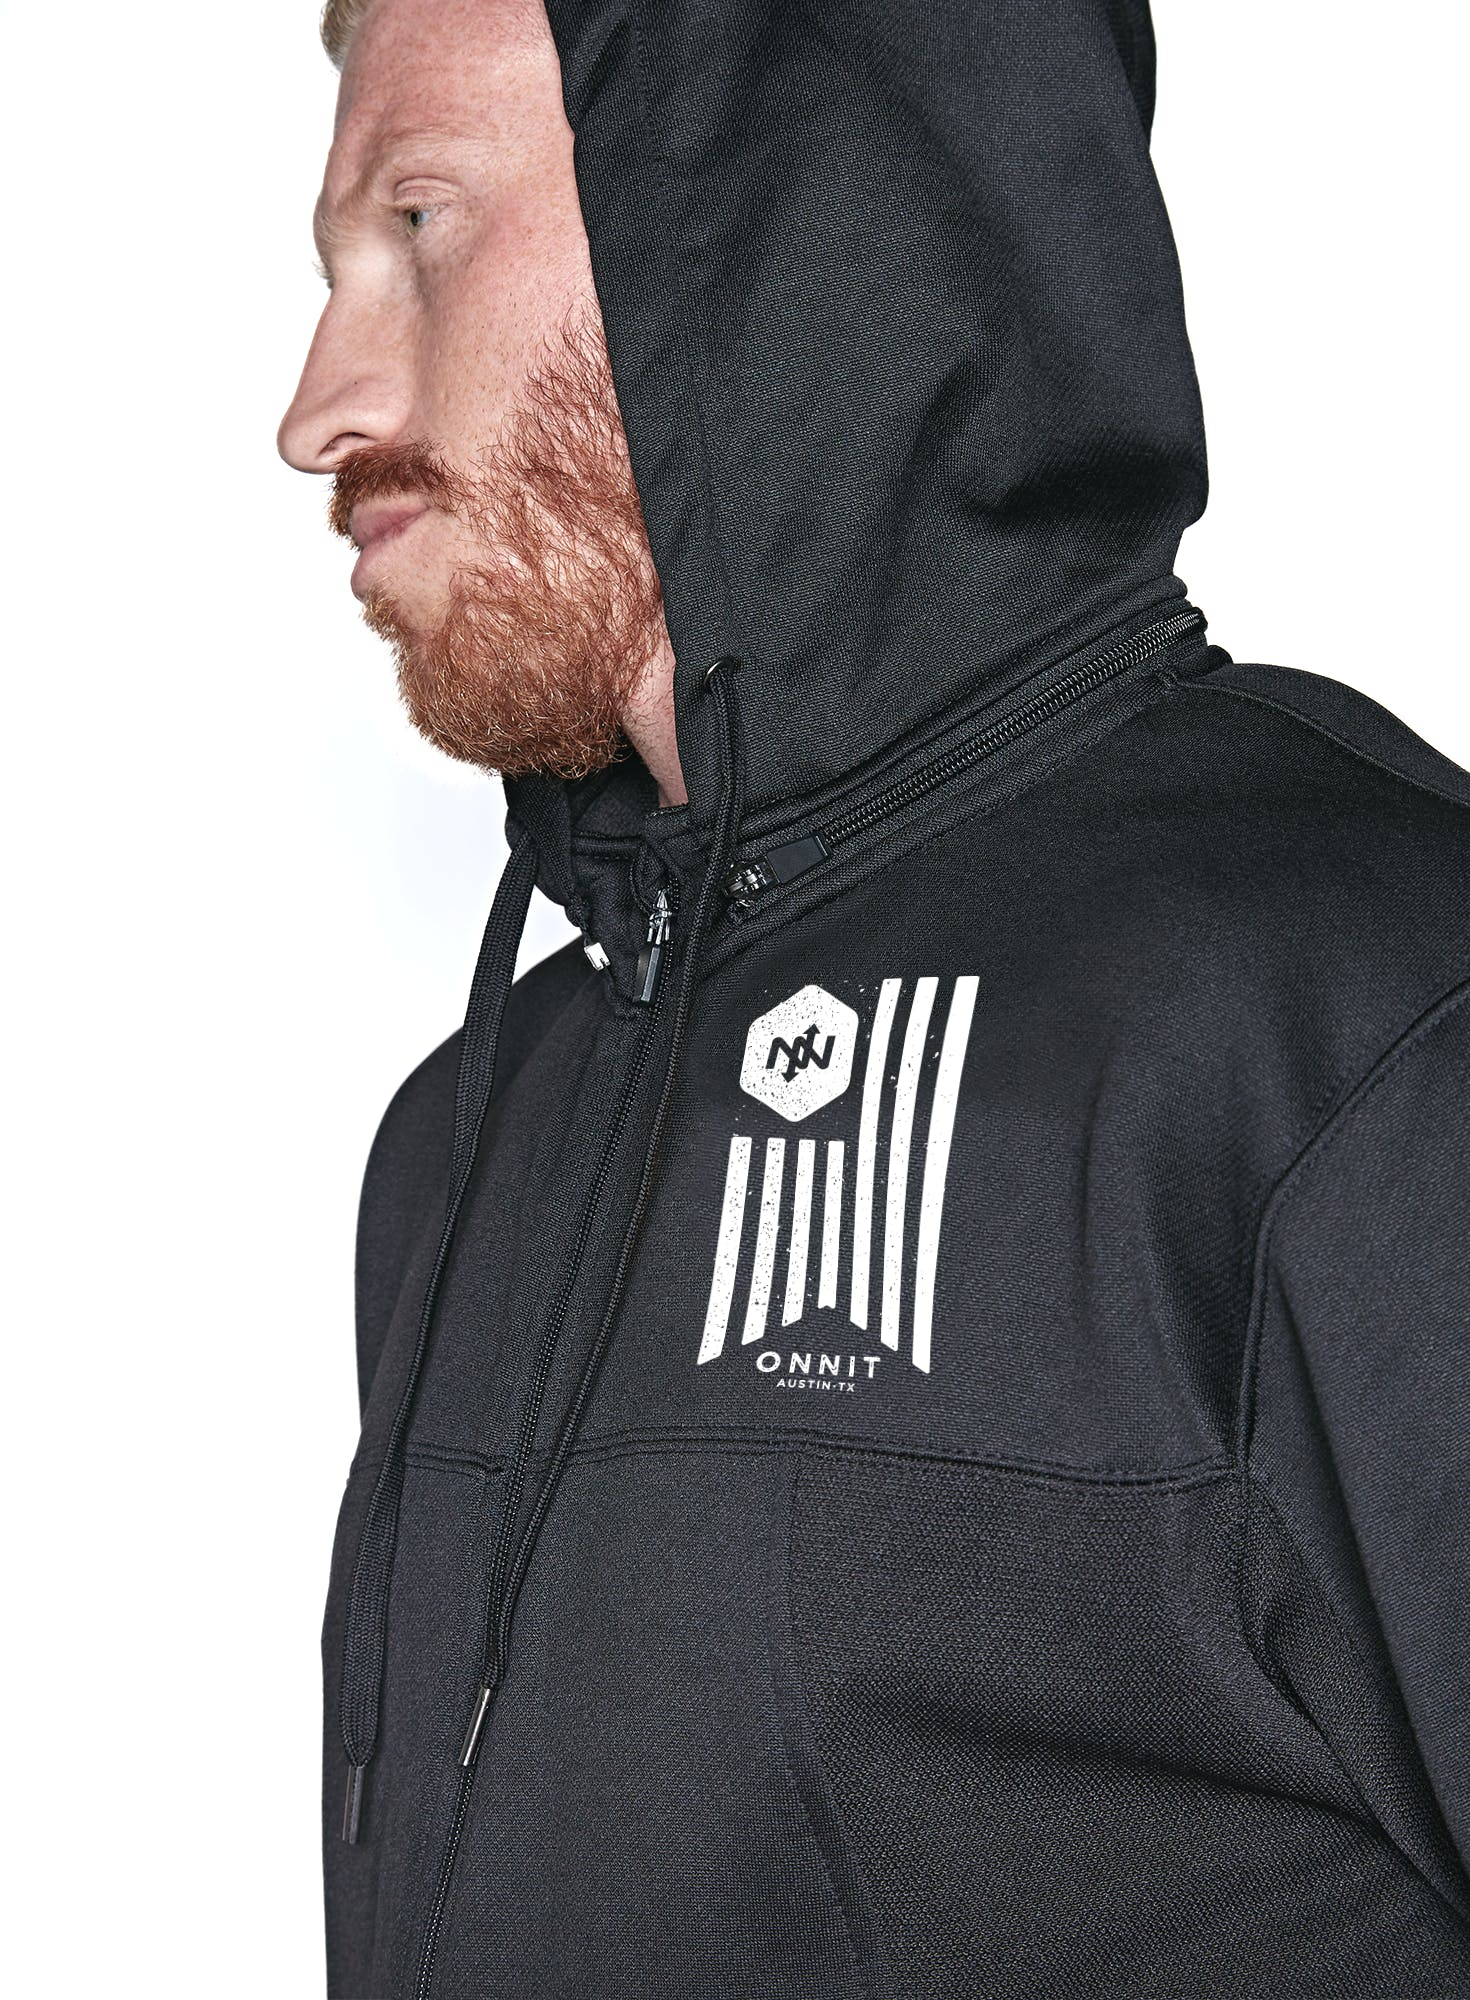 Banner Tech-Zip Jacket Bonus Image